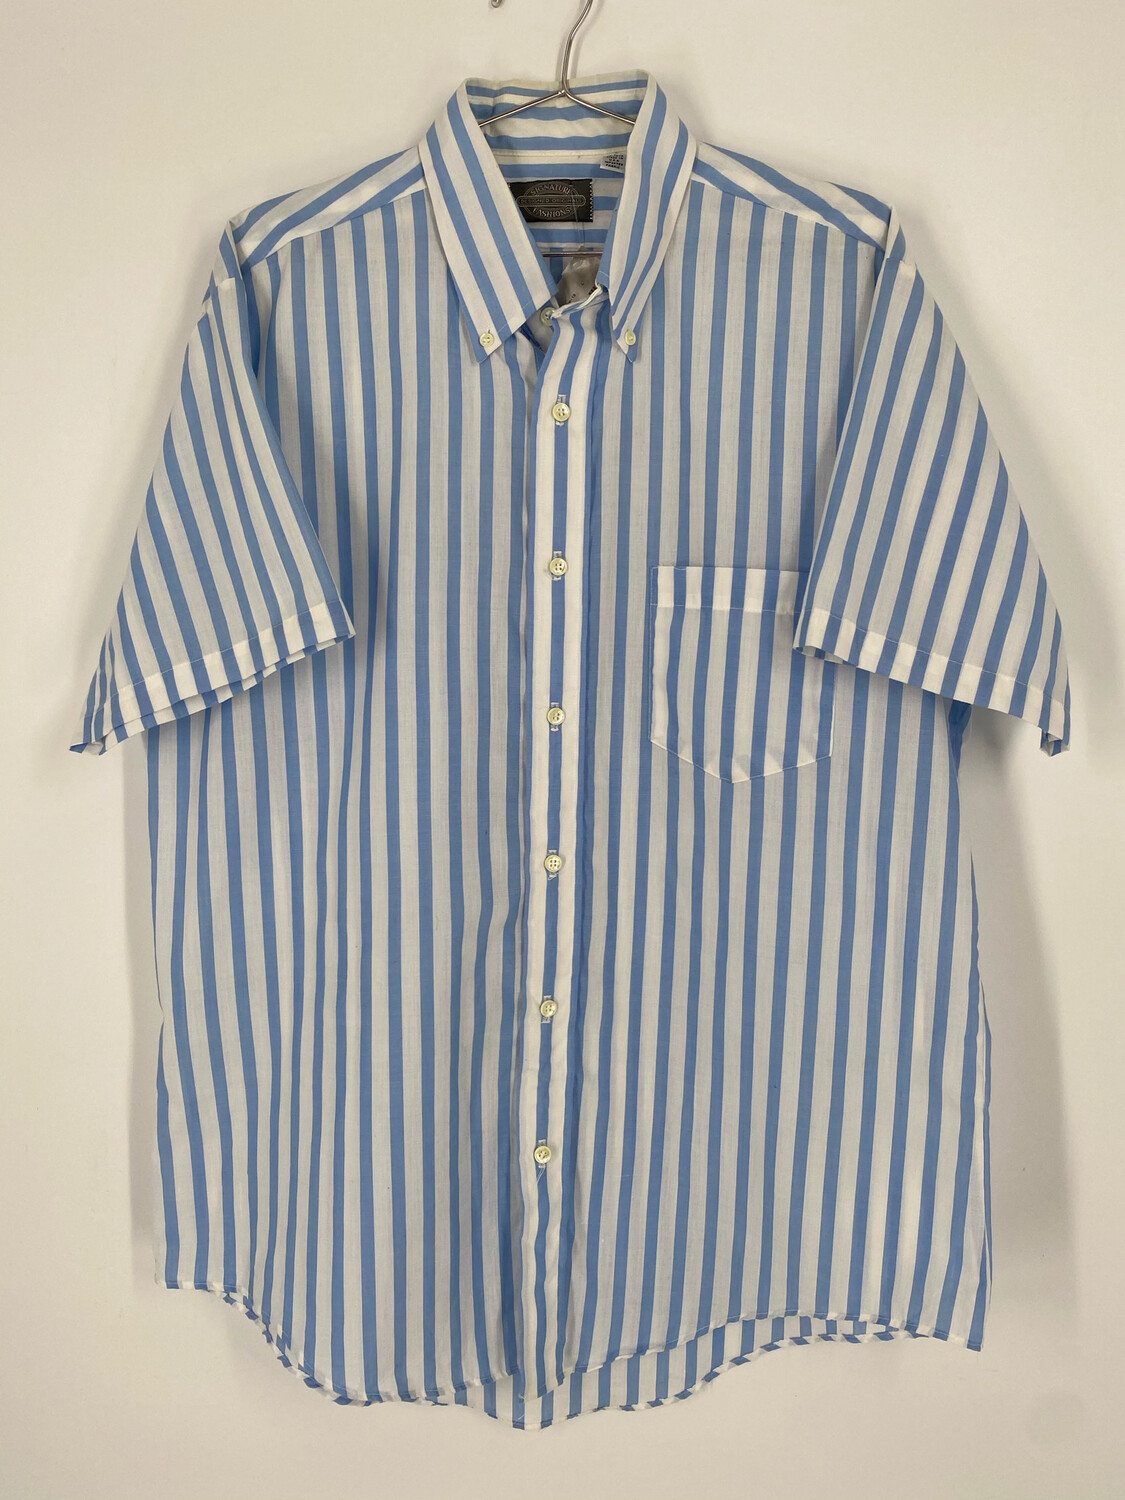 Signature Fashions Blue And White Pinstripe Short Sleeve Button Down Size L